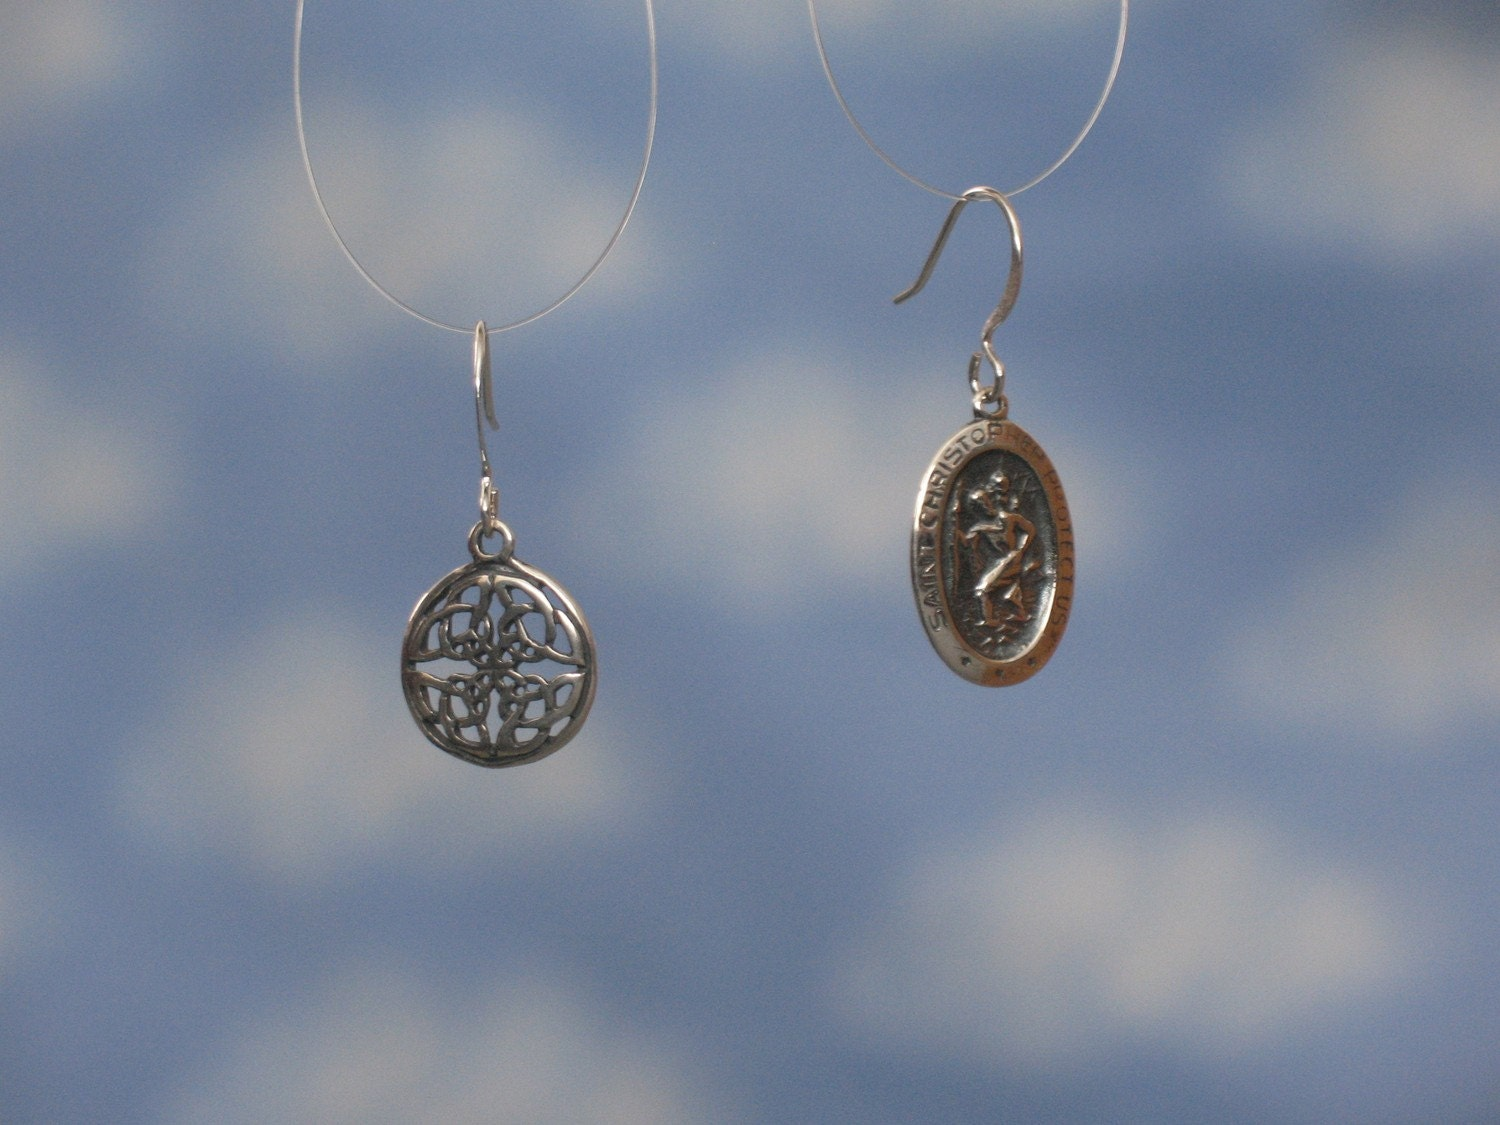 Celtic knot and St. Christopher medal